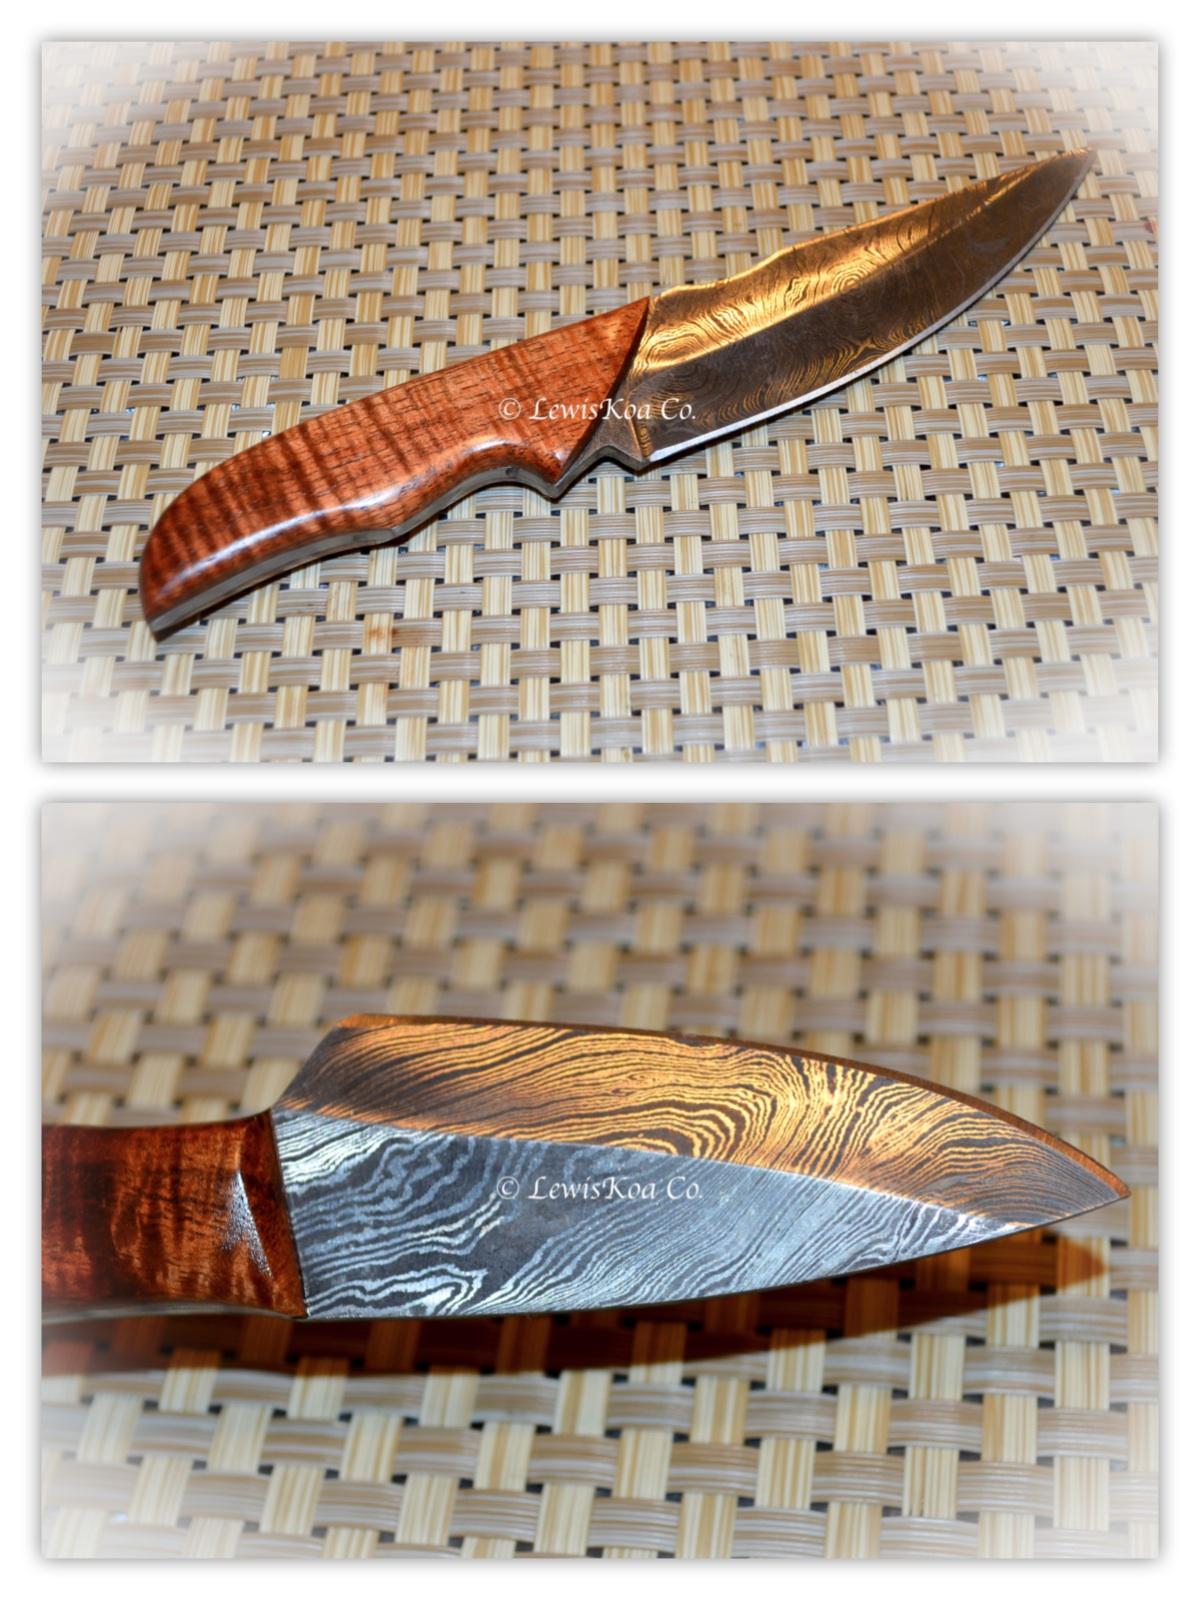 Koa Damascus knife